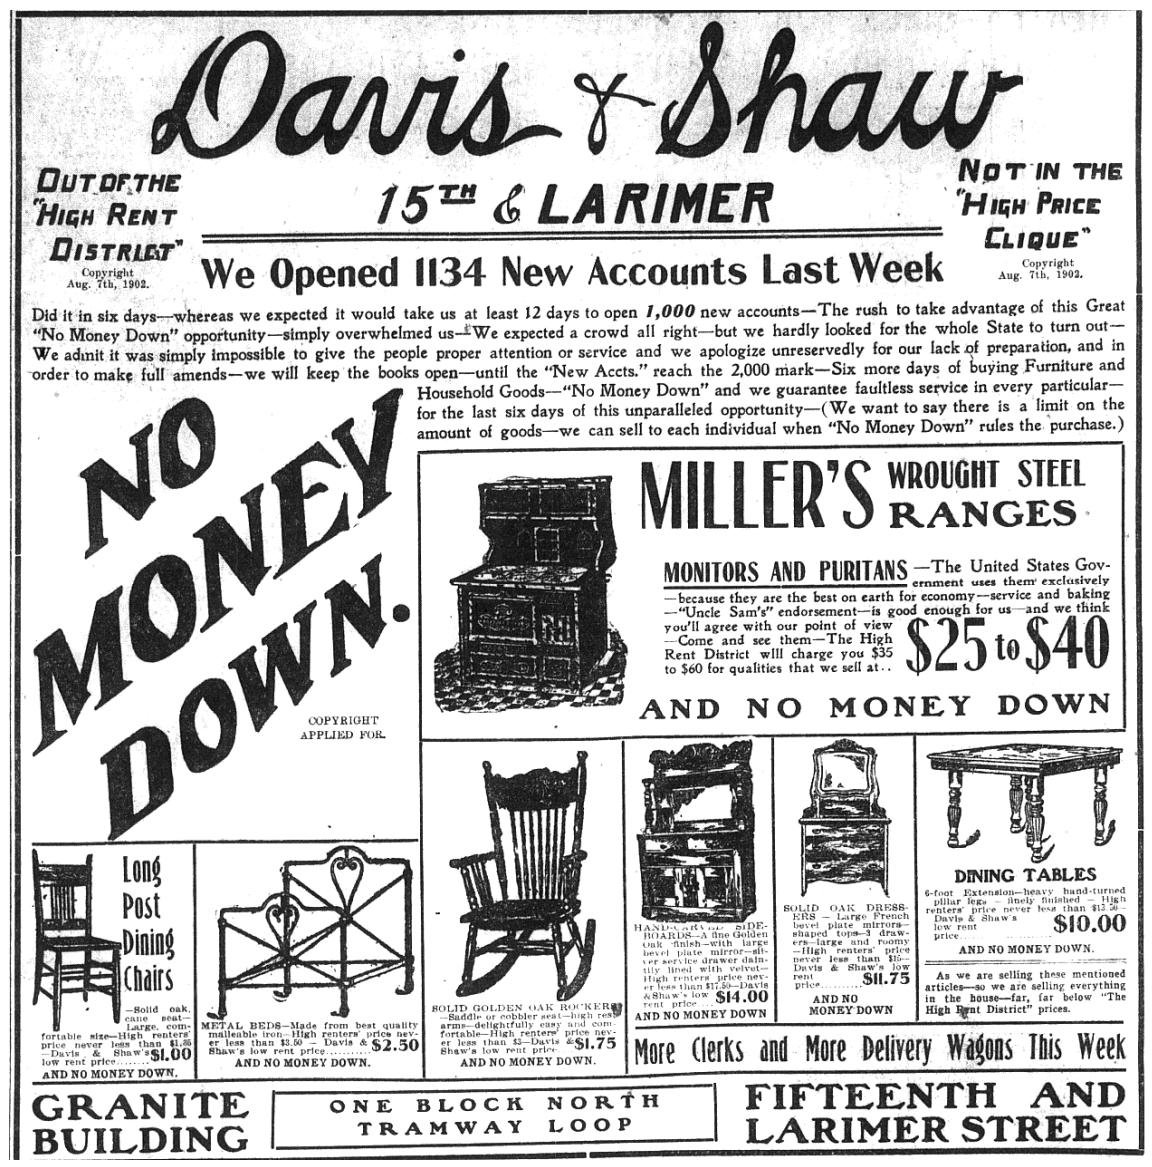 Davis & Shaw Furniture Company: Denver's 20th Century